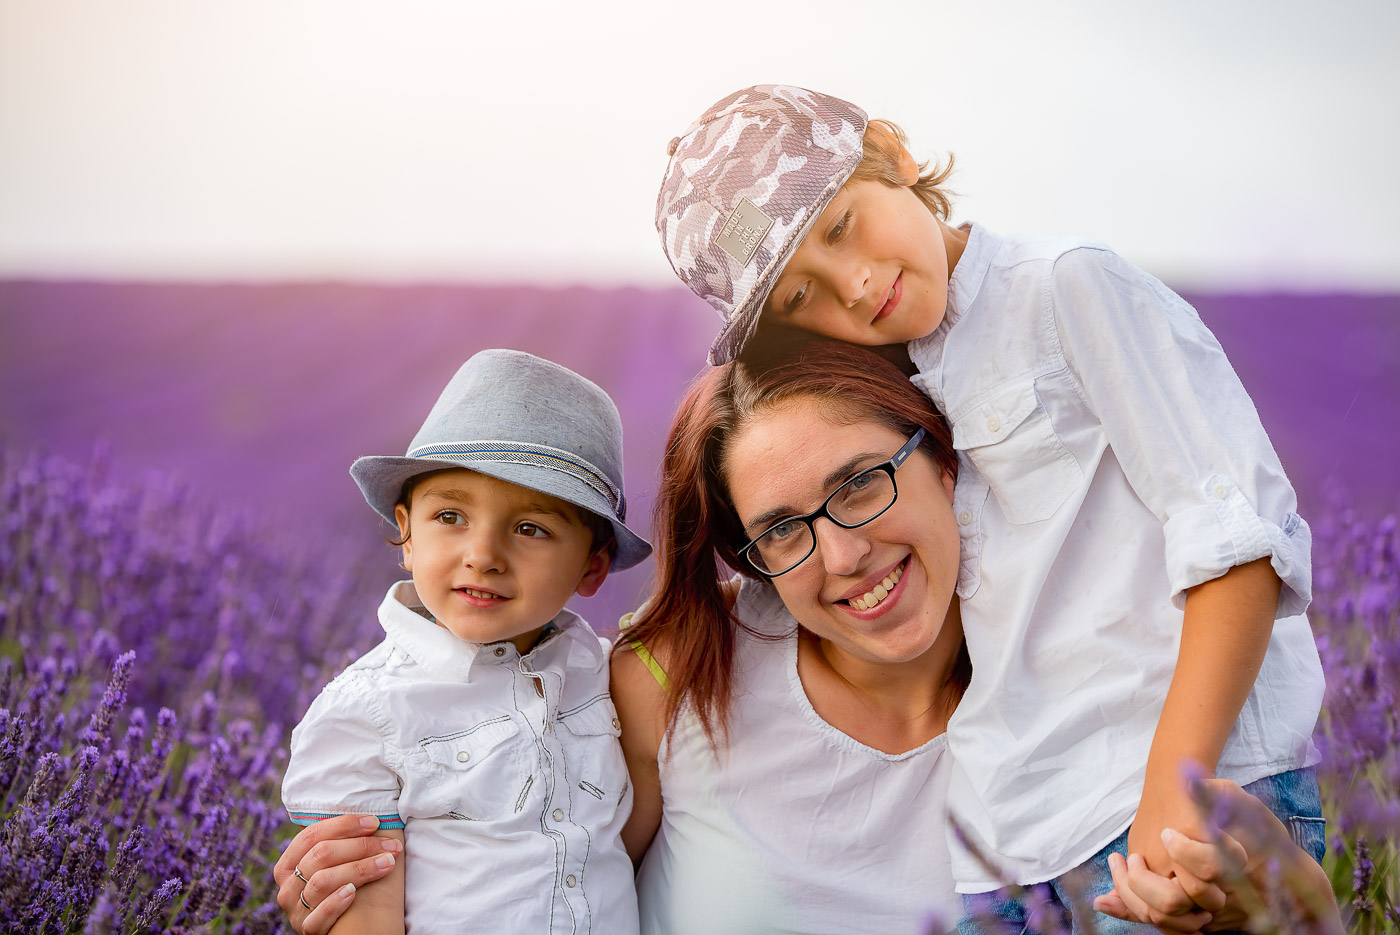 Lavender family photo of a proud mommy and her two sons with hats and matching dreses